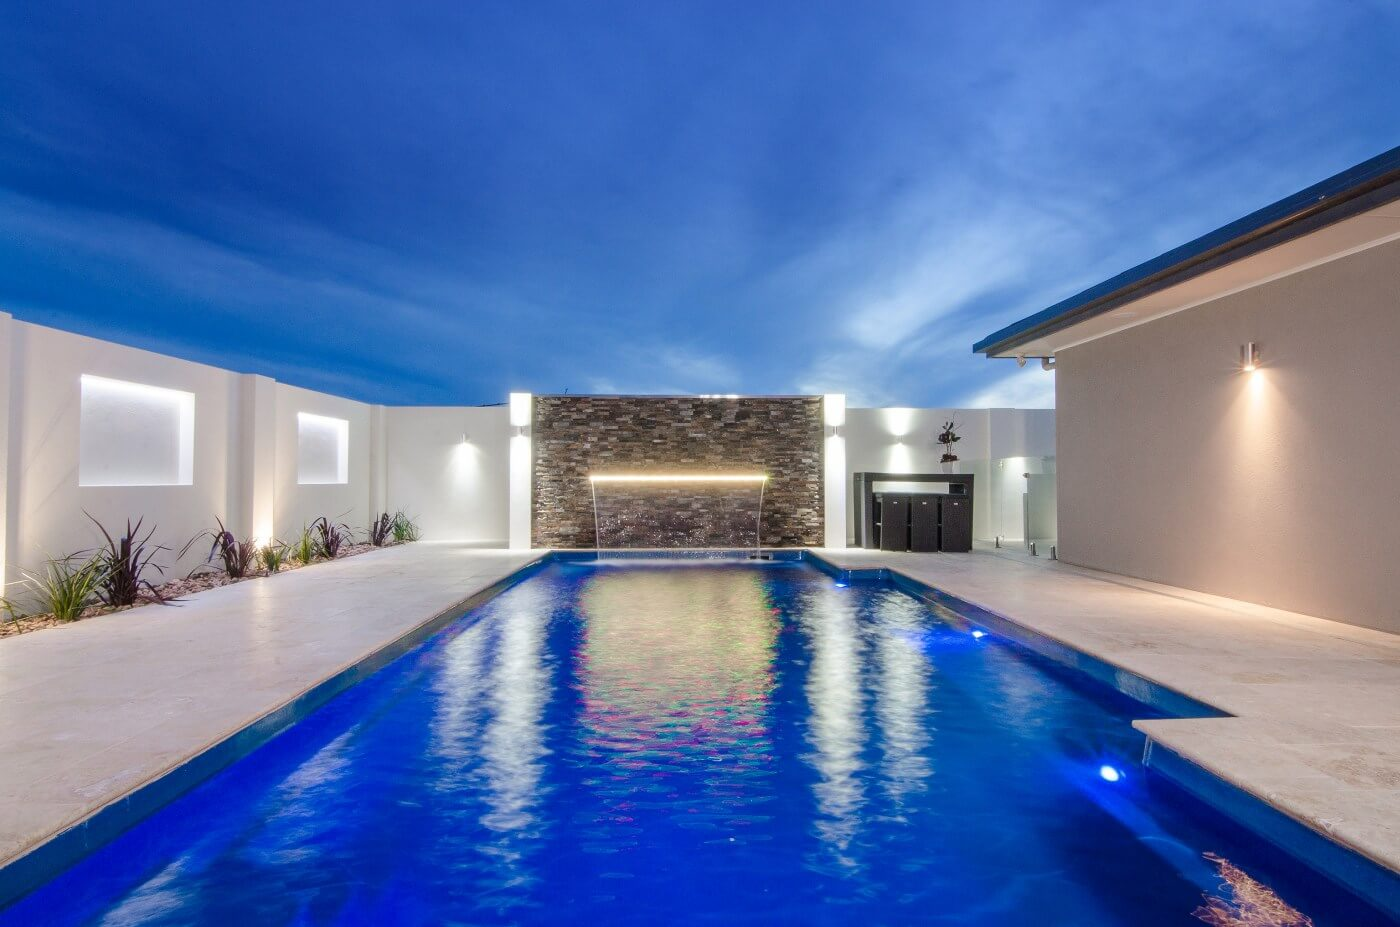 Ideal Pools: how to select the right design for you? - Compass Pools